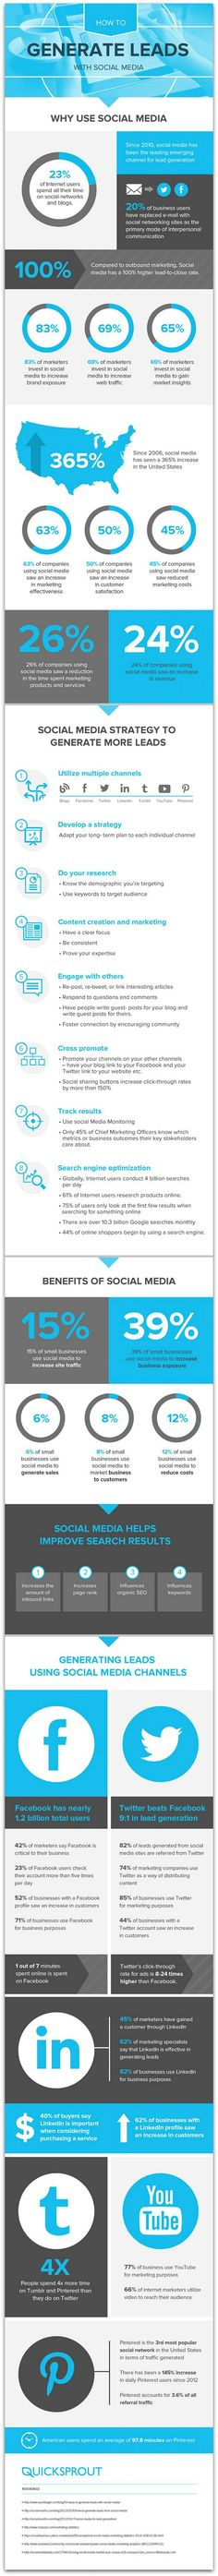 Having trouble with online lead generation? This infographic about how to use social media to generate leads will help. Inbound Marketing, Marketing Digital, Content Marketing, Internet Marketing, Online Marketing, Social Media Marketing, Marketing Automation, Marketing Technology, Marketing Communications